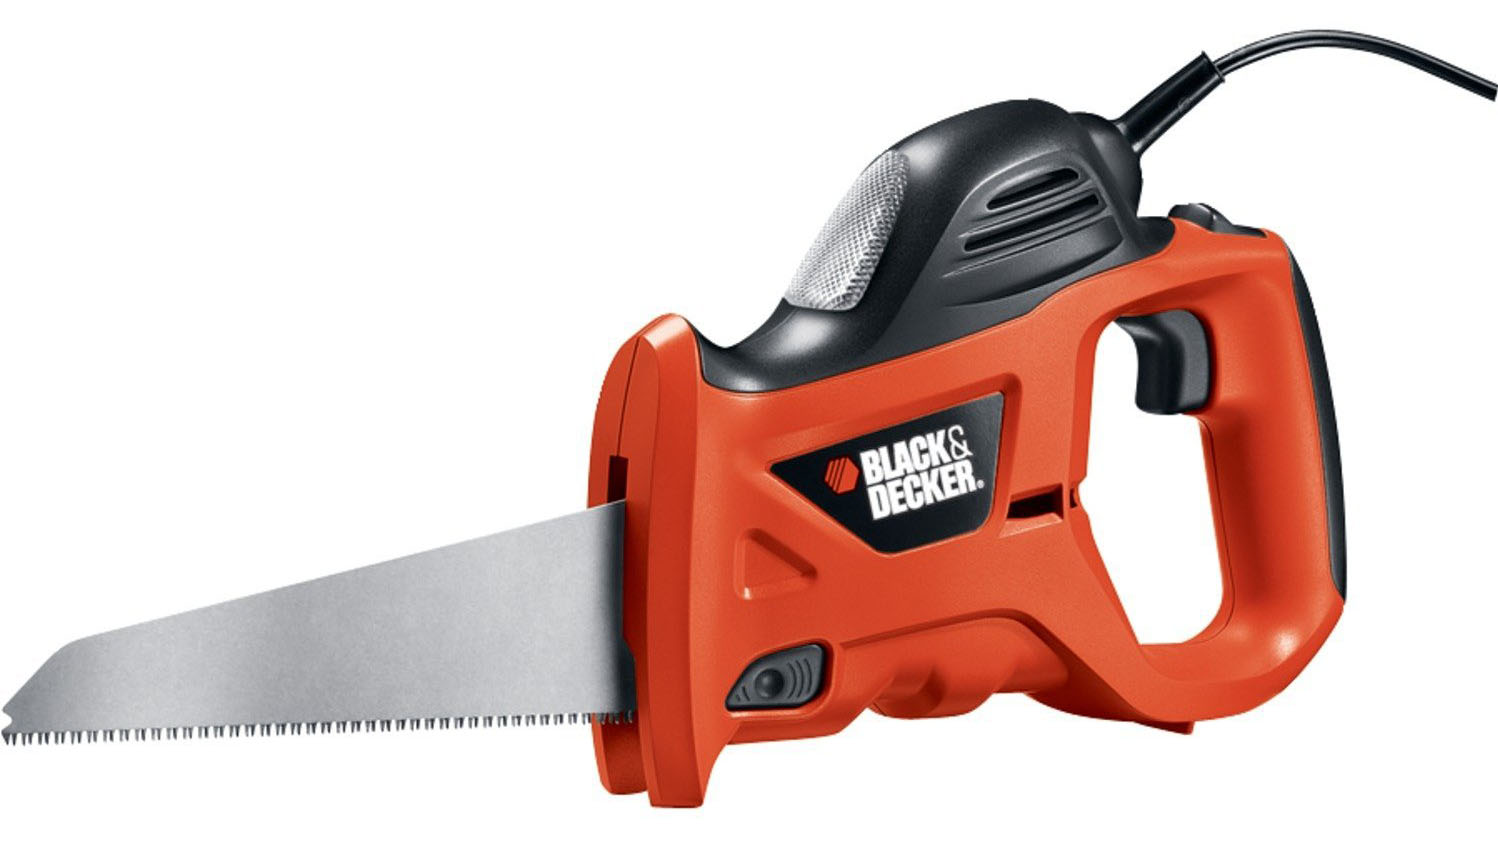 Best-saw-for-cutting-wood